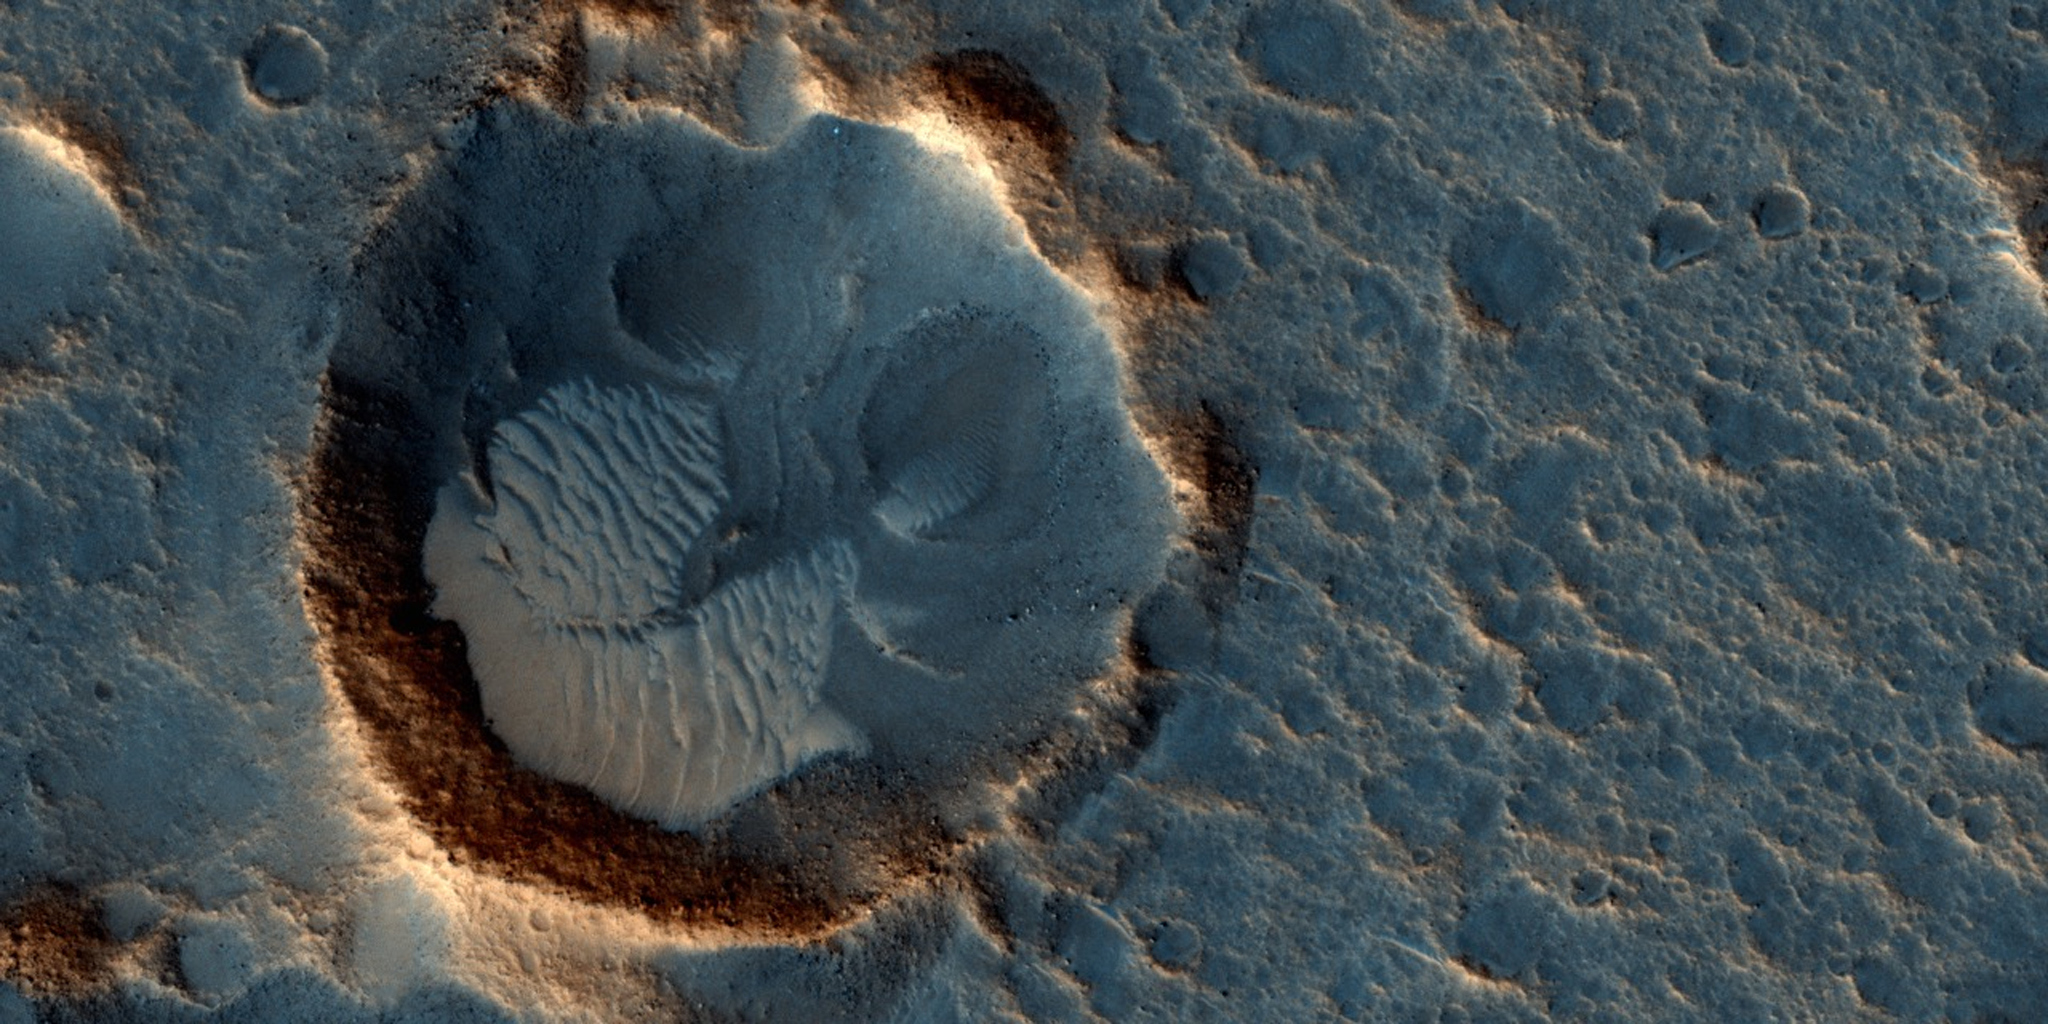 """This May 2015 image from the HiRISE camera on NASA's Mars Reconnaissance Orbiter shows a location on Mars associated with the best-selling novel and Hollywood movie, """"The Martian."""" Image credit: NASA/JPL-Caltech/Univ. of Arizona"""